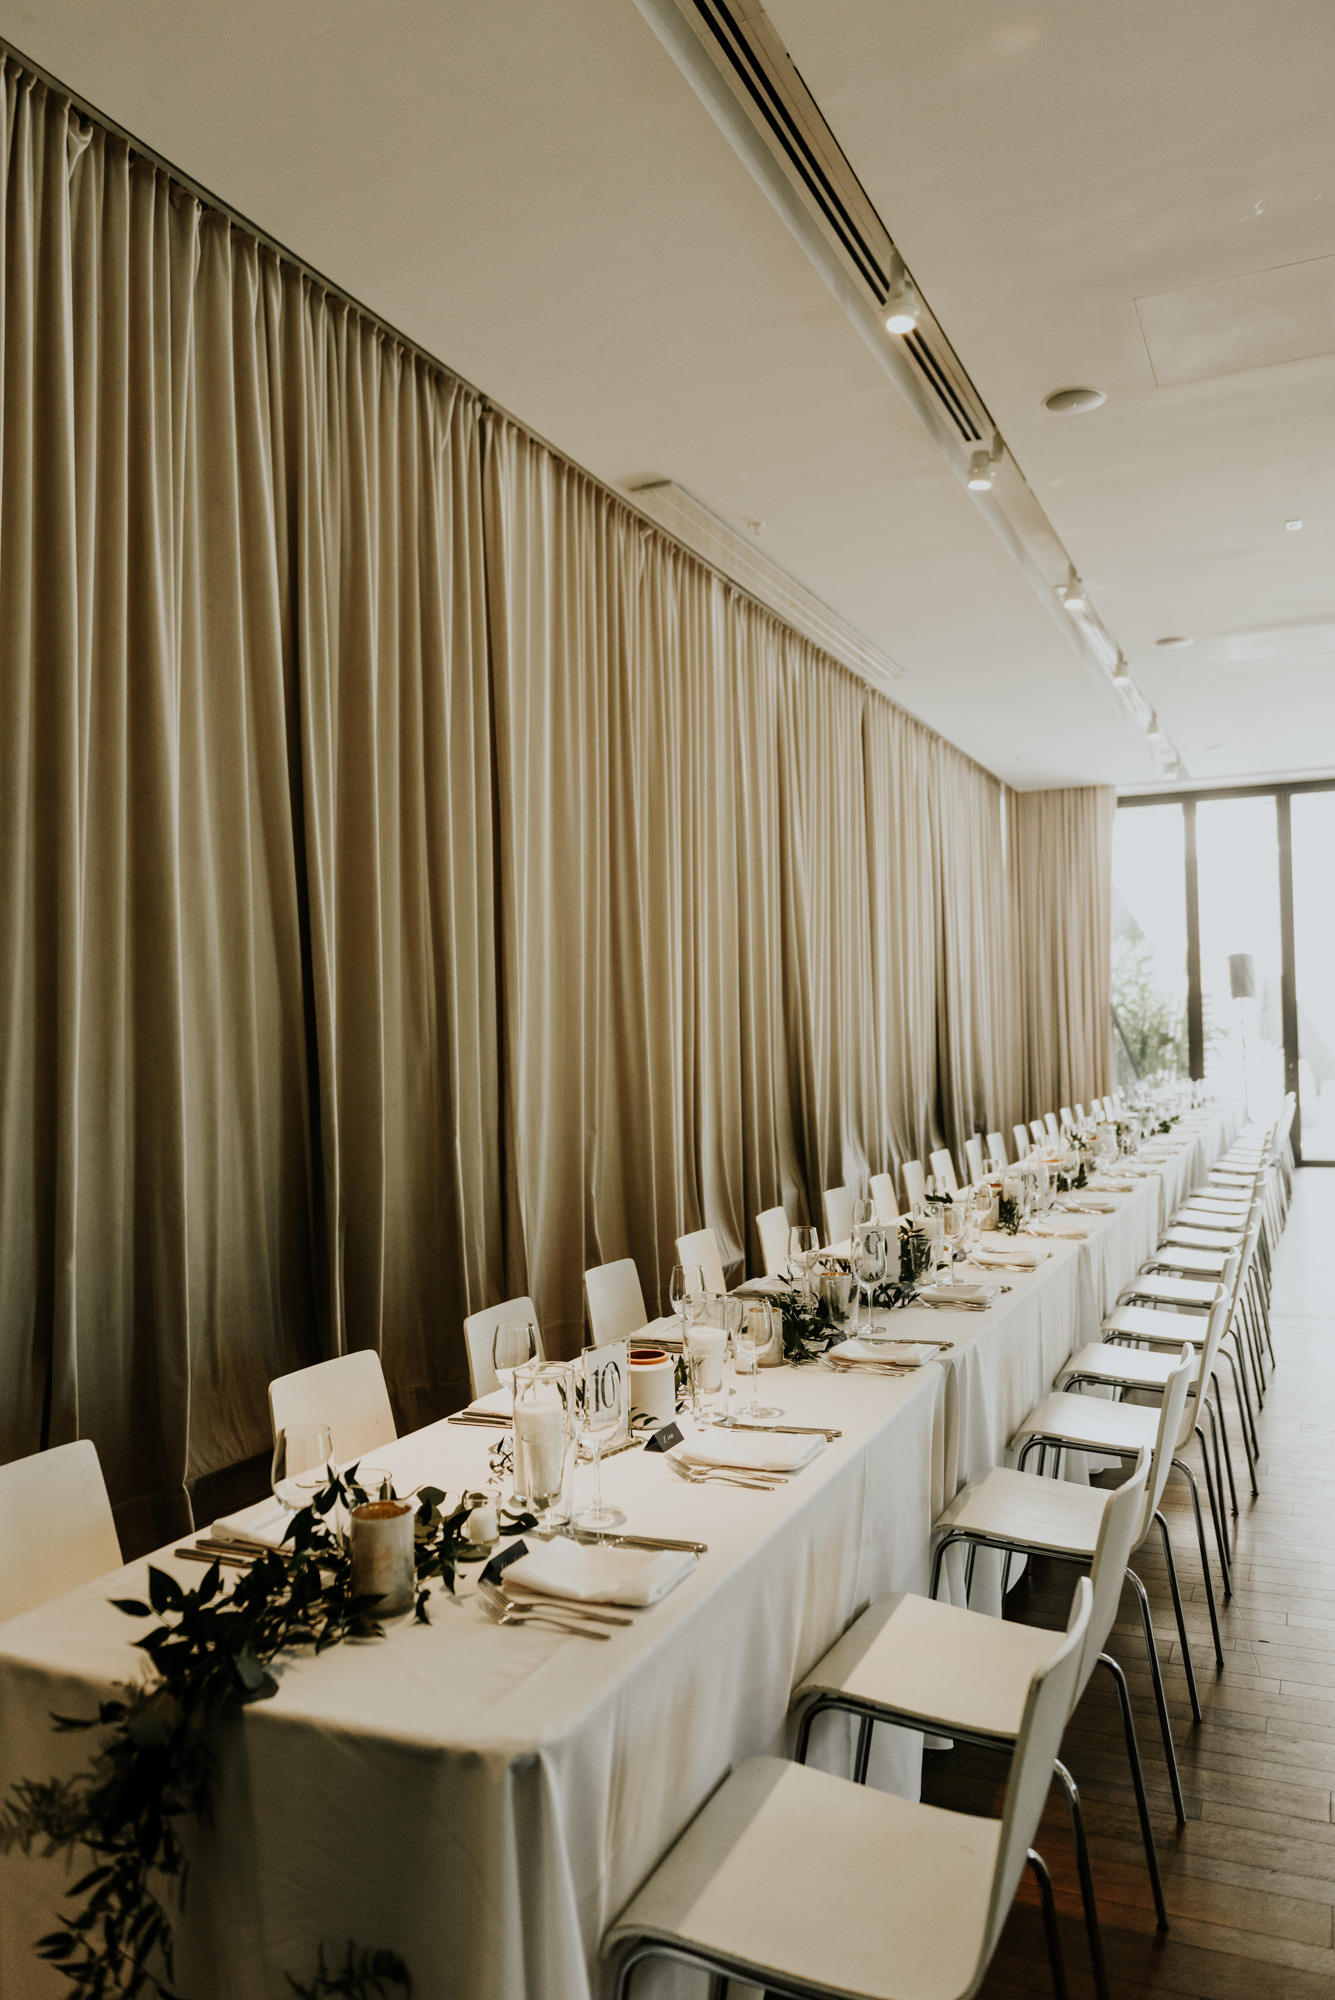 Intimate Wedding Day Modern Decor at South Congress Hotel in Austin, Texas